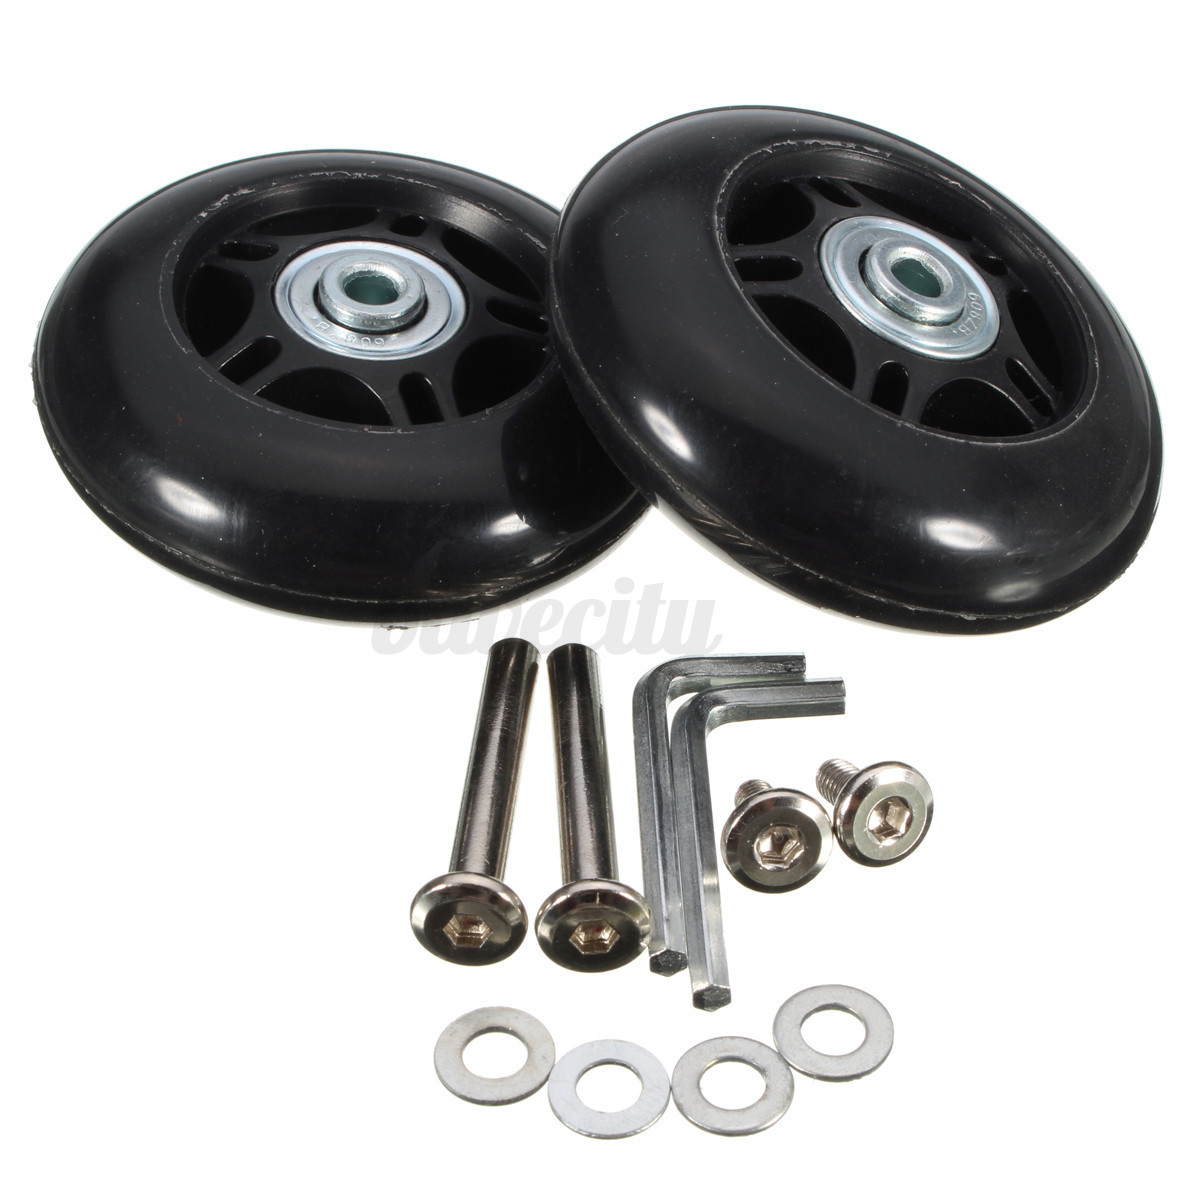 Tool Replacement Parts : Set od mm luggage suitcase wheels replacement deluxe